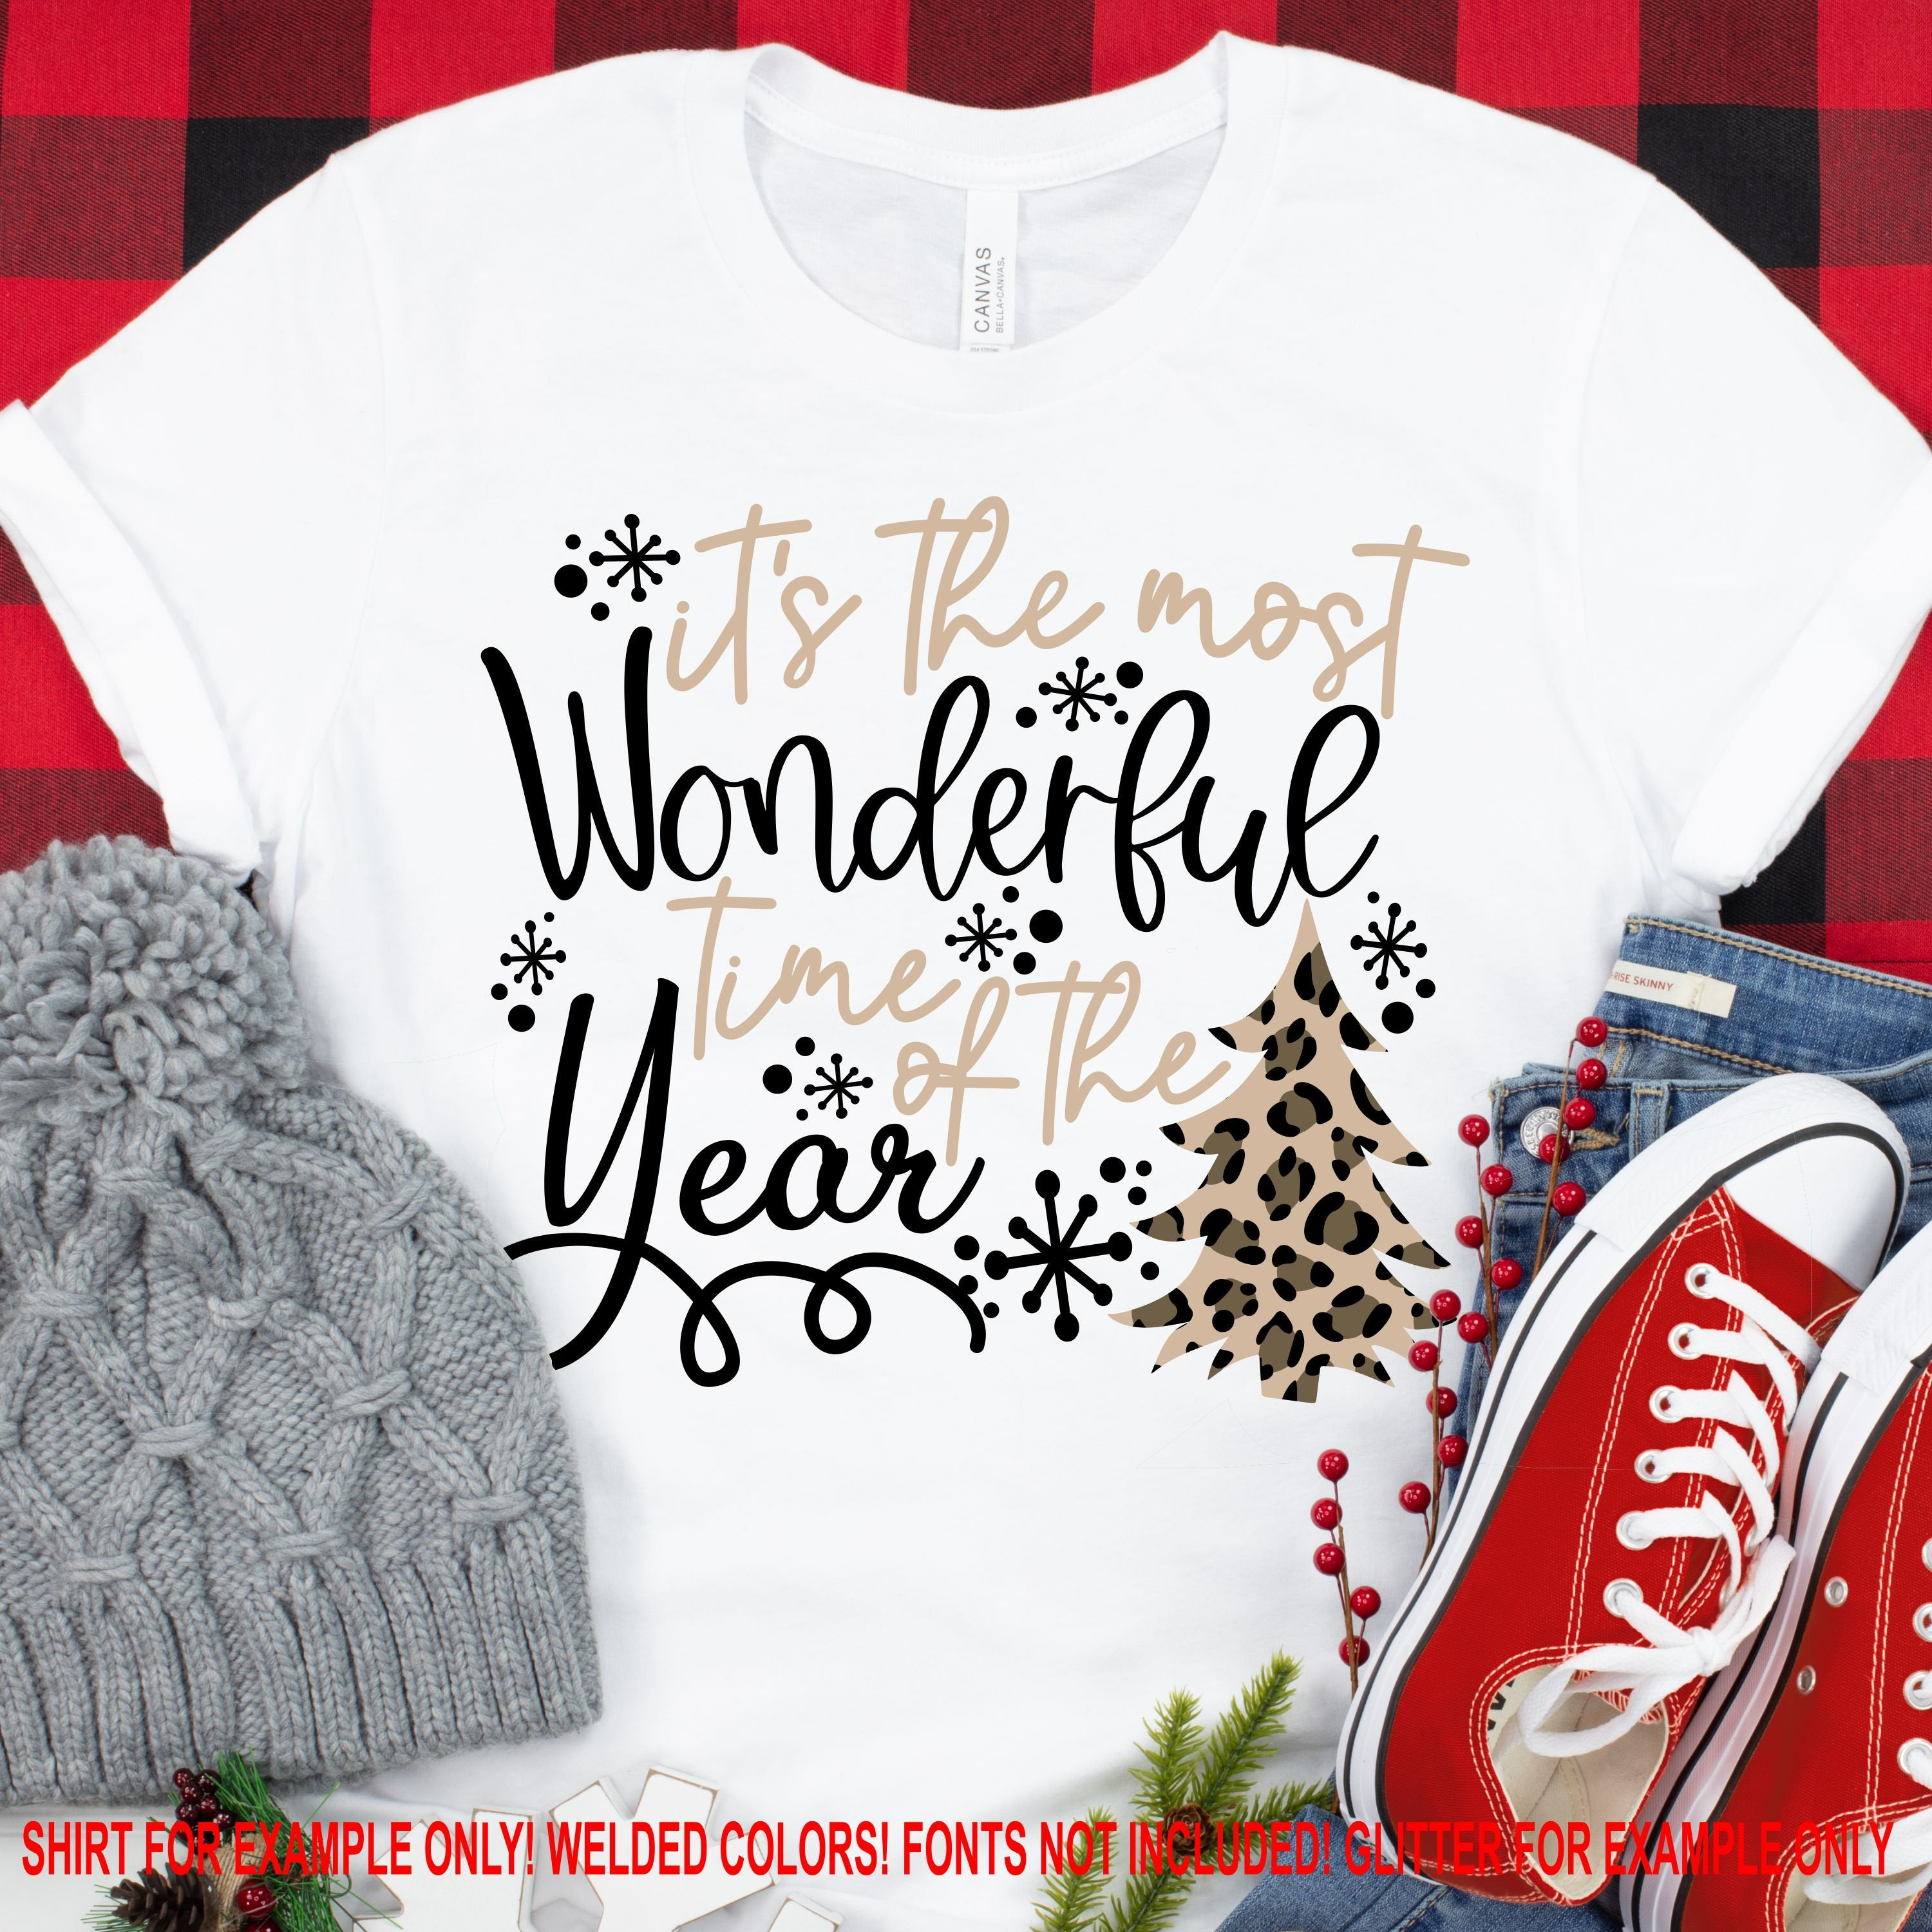 Most-wonderful-time-of-the-year-leopard-svg-leopard-christmas-tree-svg-christmas-svg-designs-christmas-cut-file-svg-for-cricut-5fa0928d